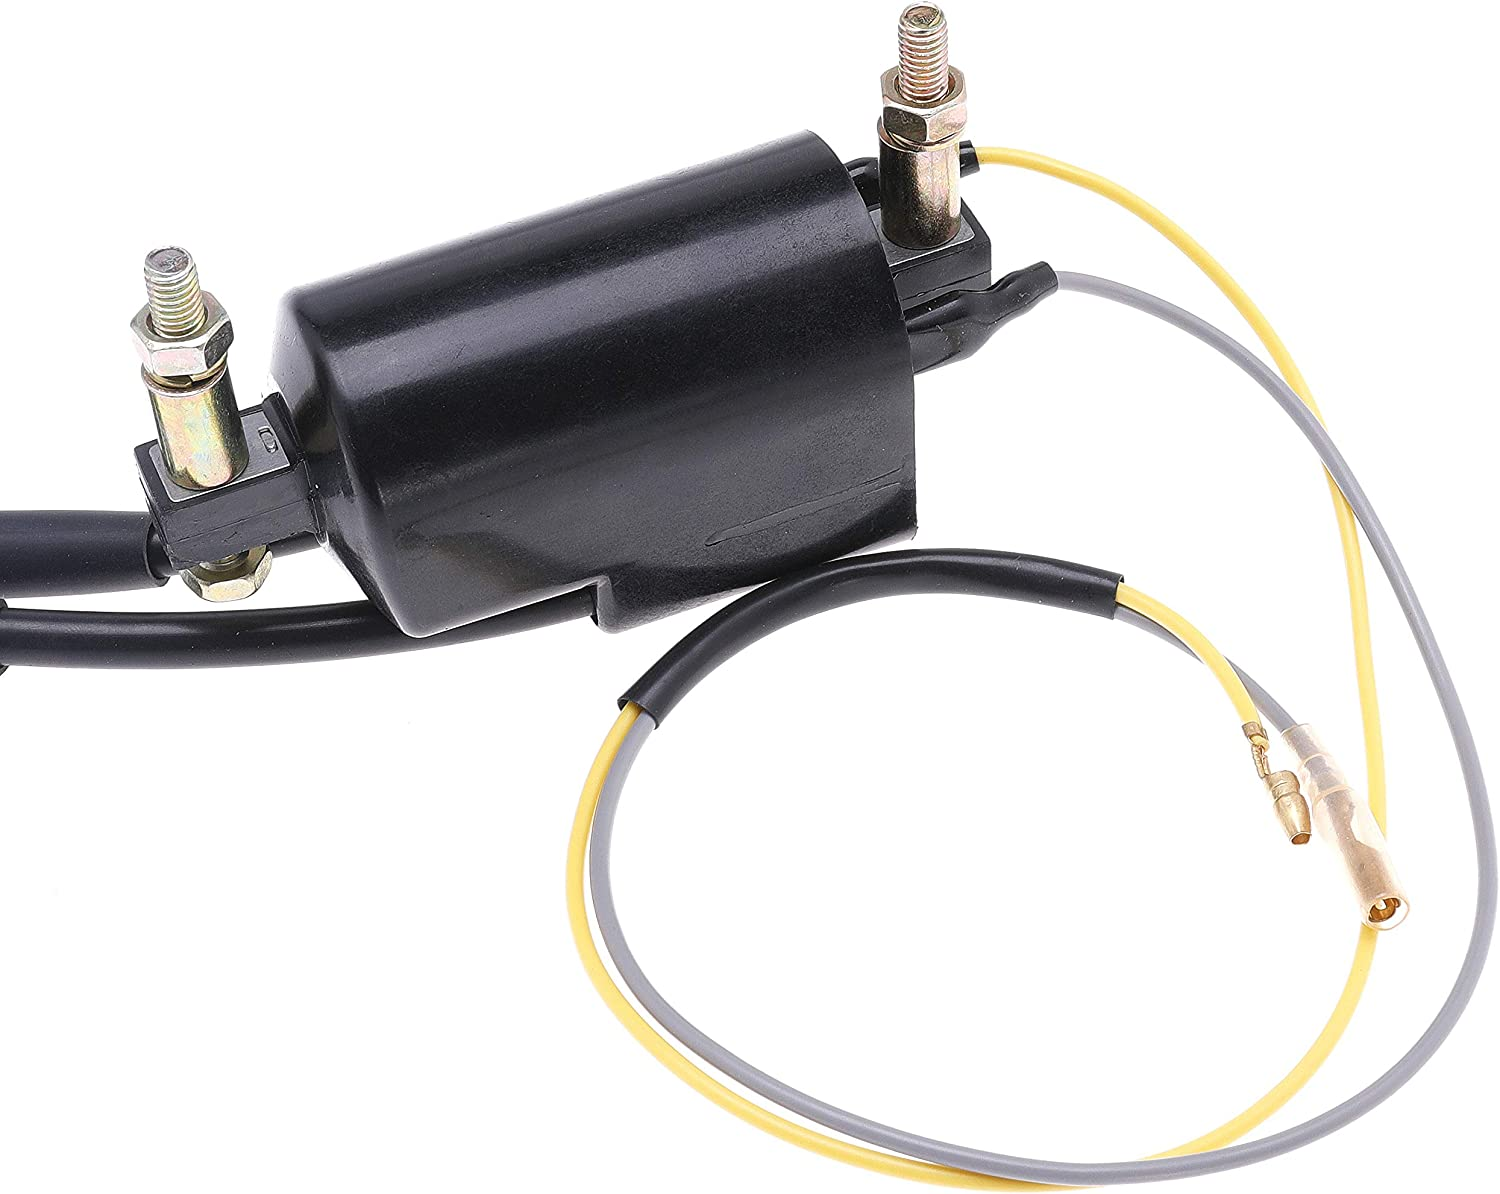 Ignition Parts 2 Pack Dual Lead Wire Ignition Coil 12V for Honda ...